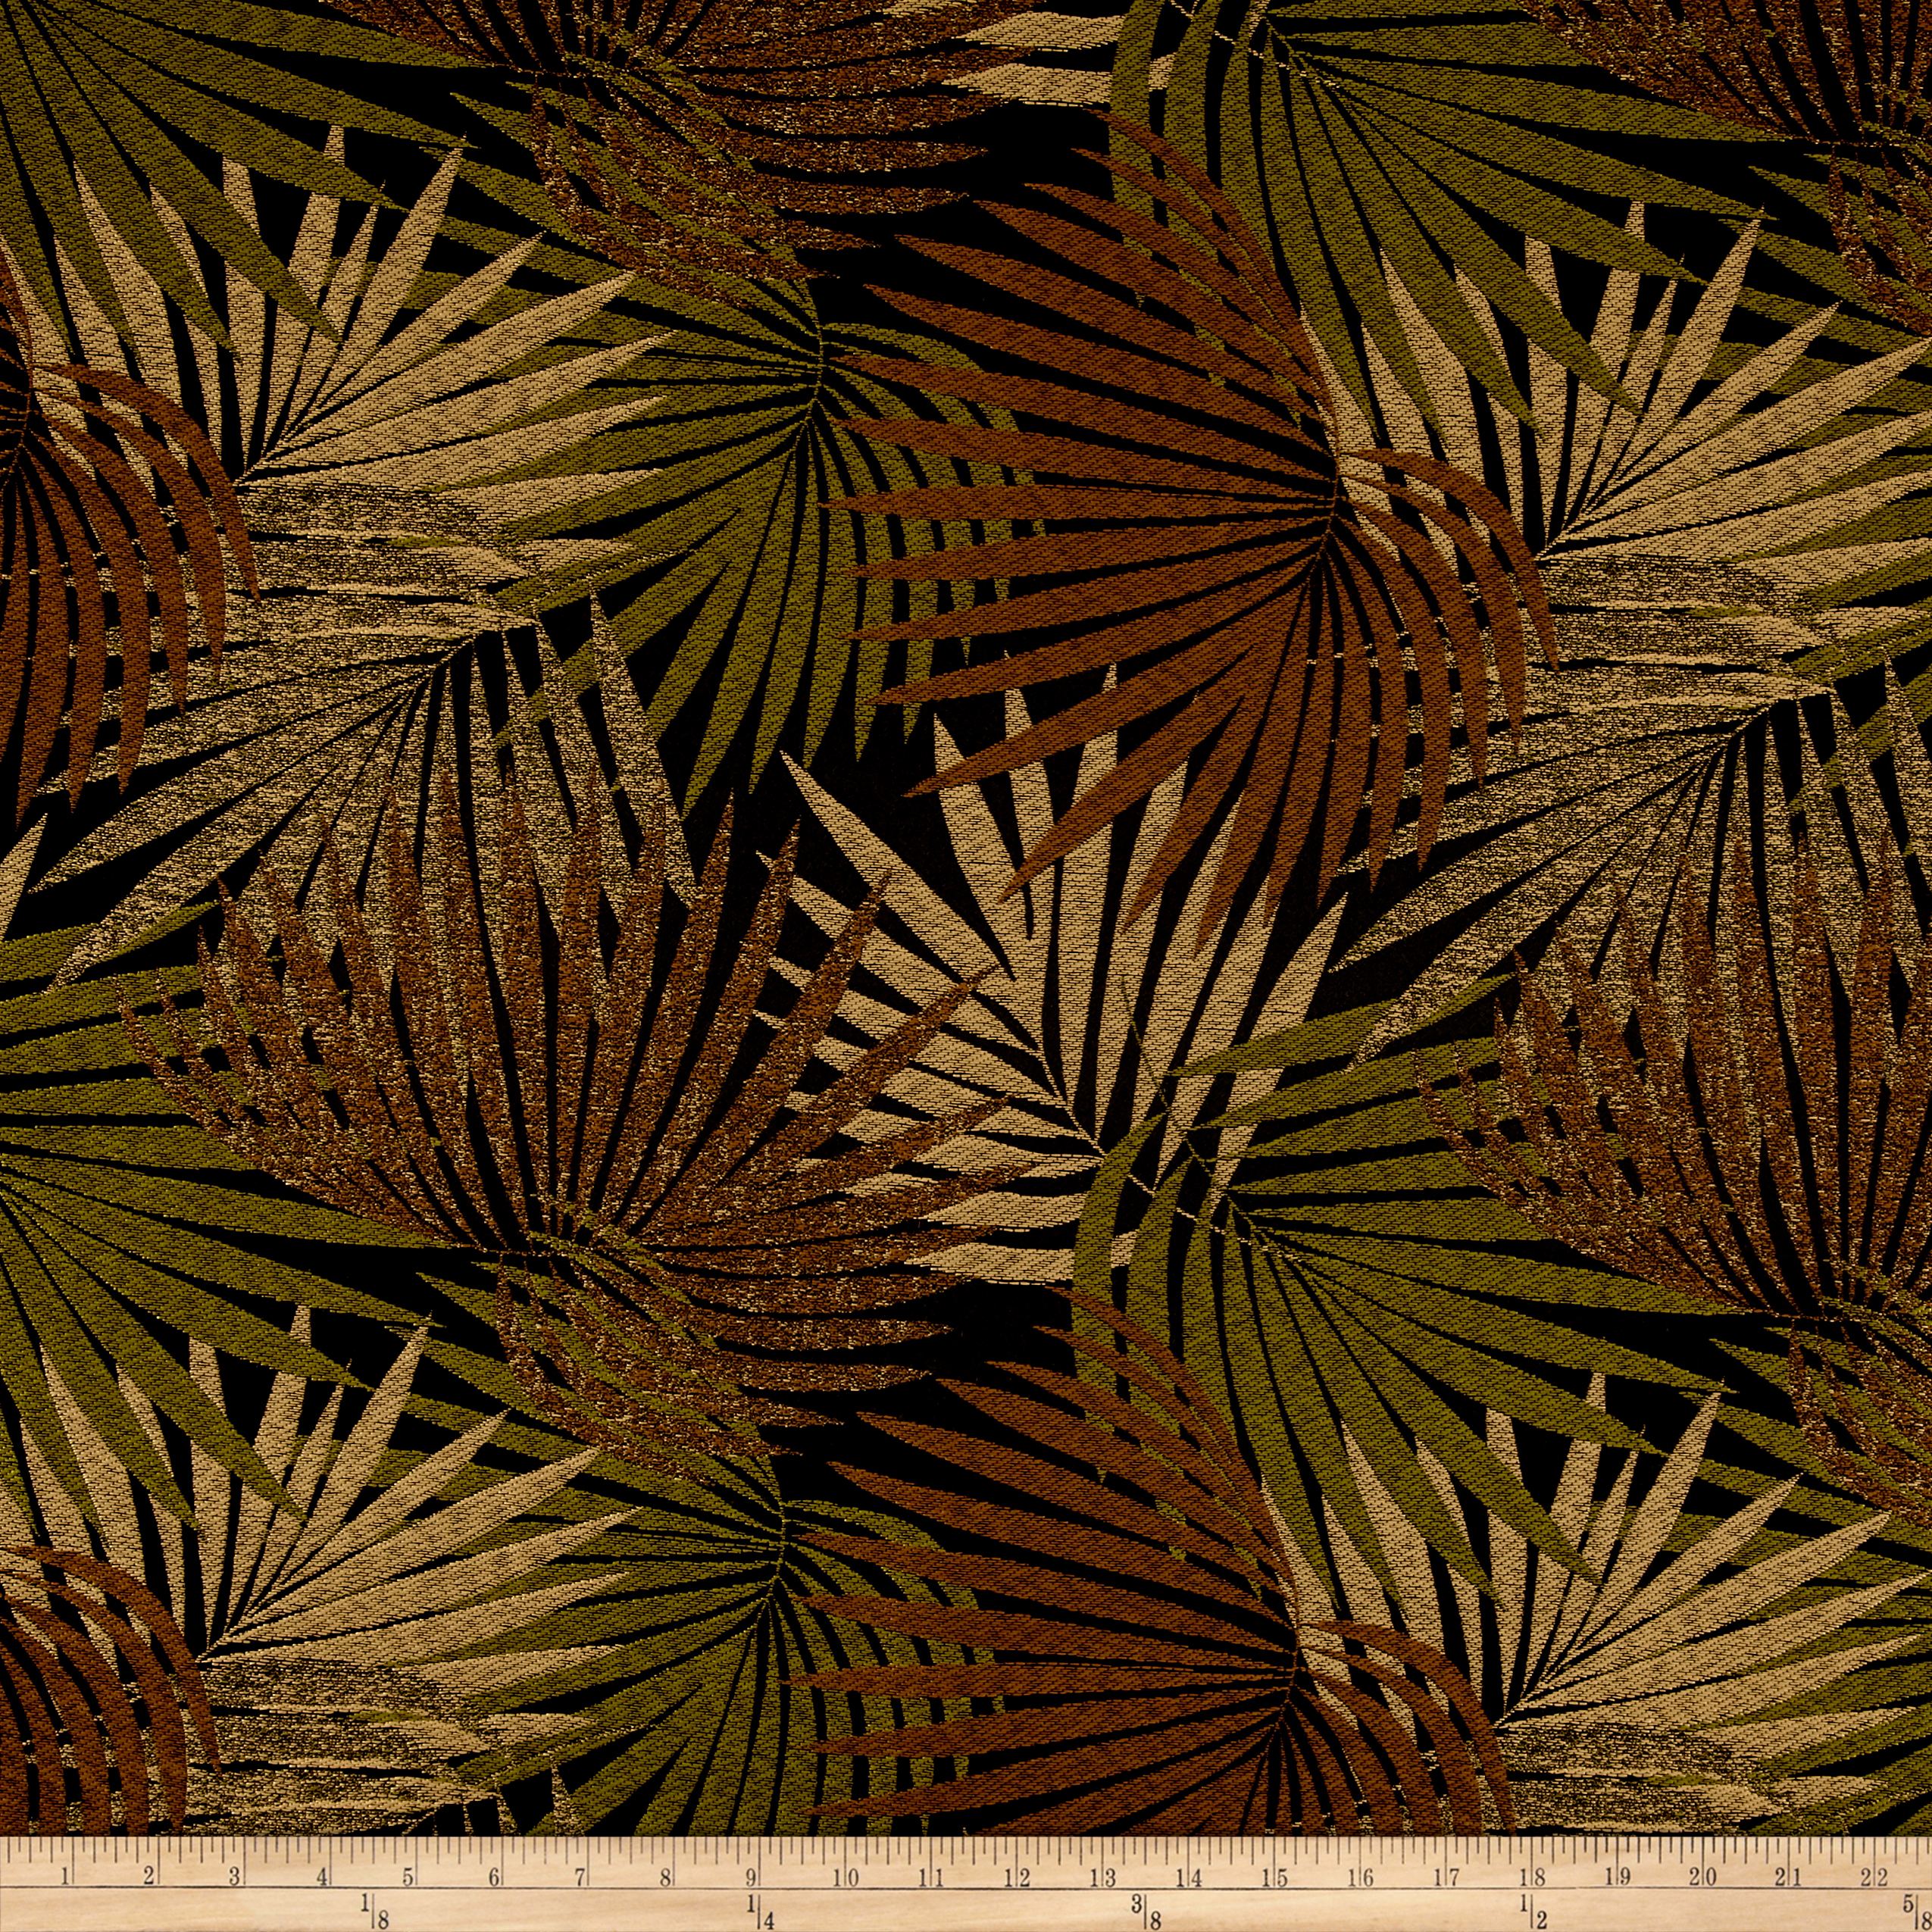 Tempo Island Tropic Jacquard Forrest Fabric by Tempro in USA